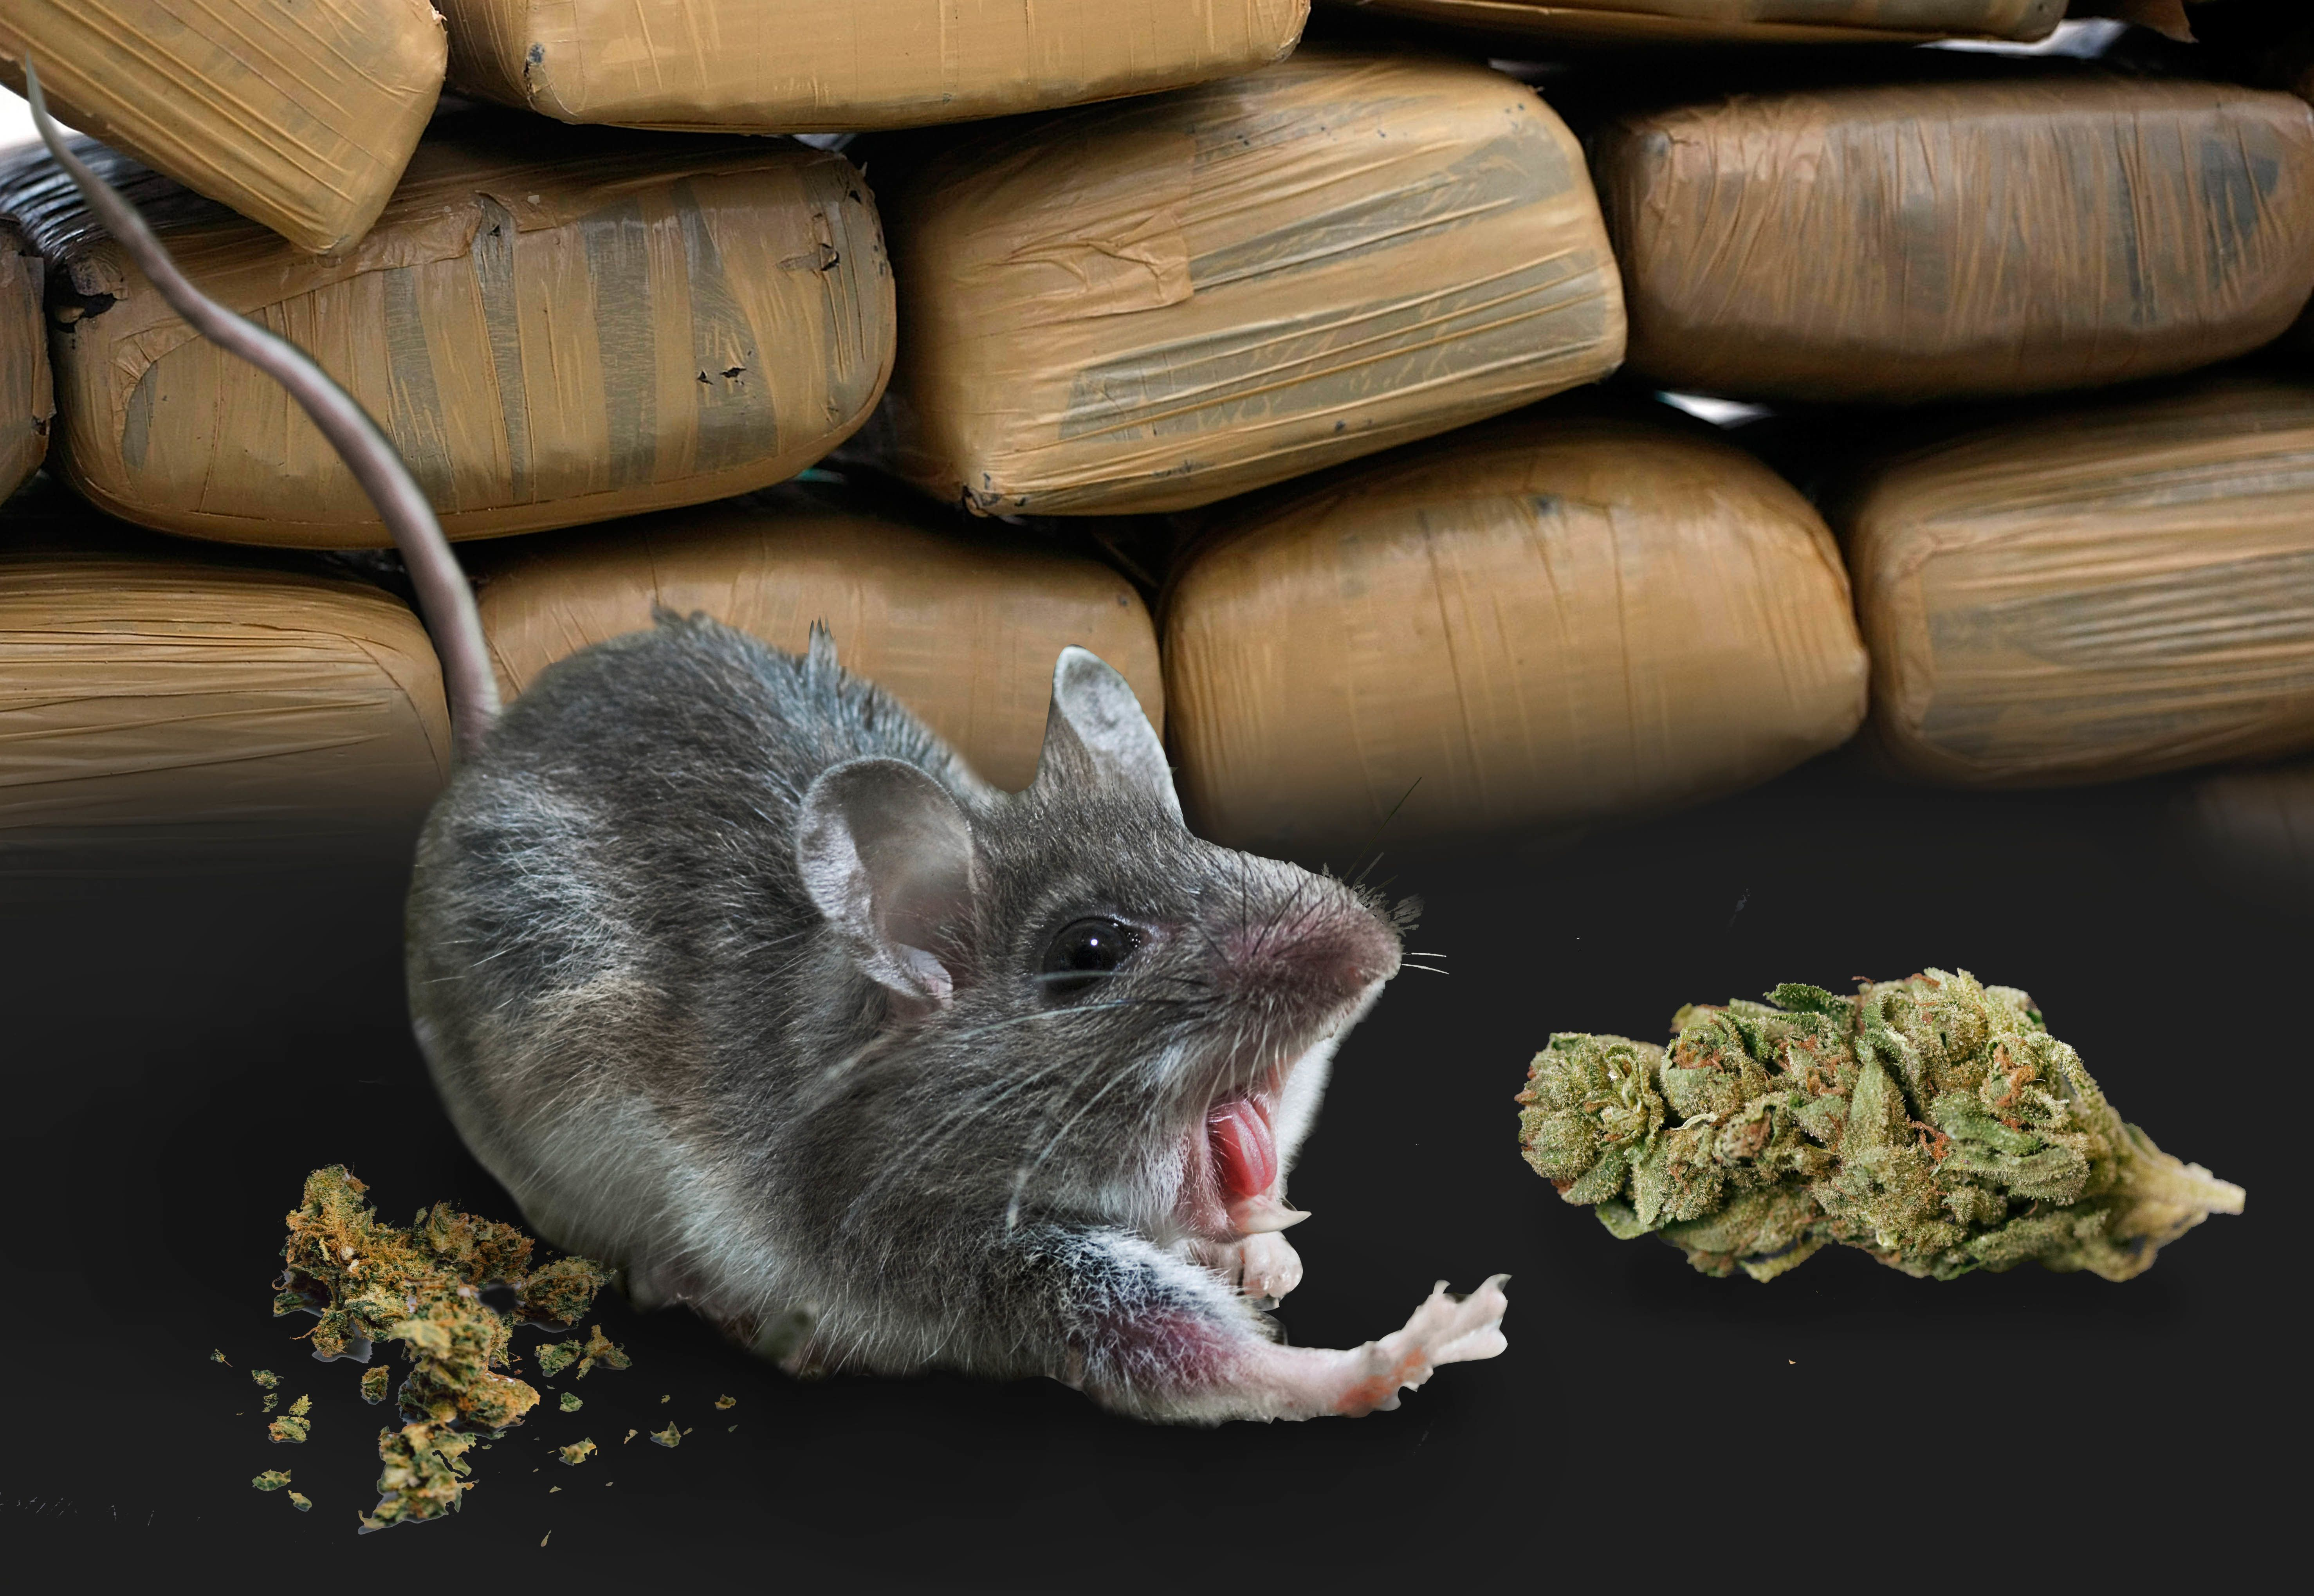 Cops Fired After Blaming Missing Half-Ton Of Pot On Stoner Mice